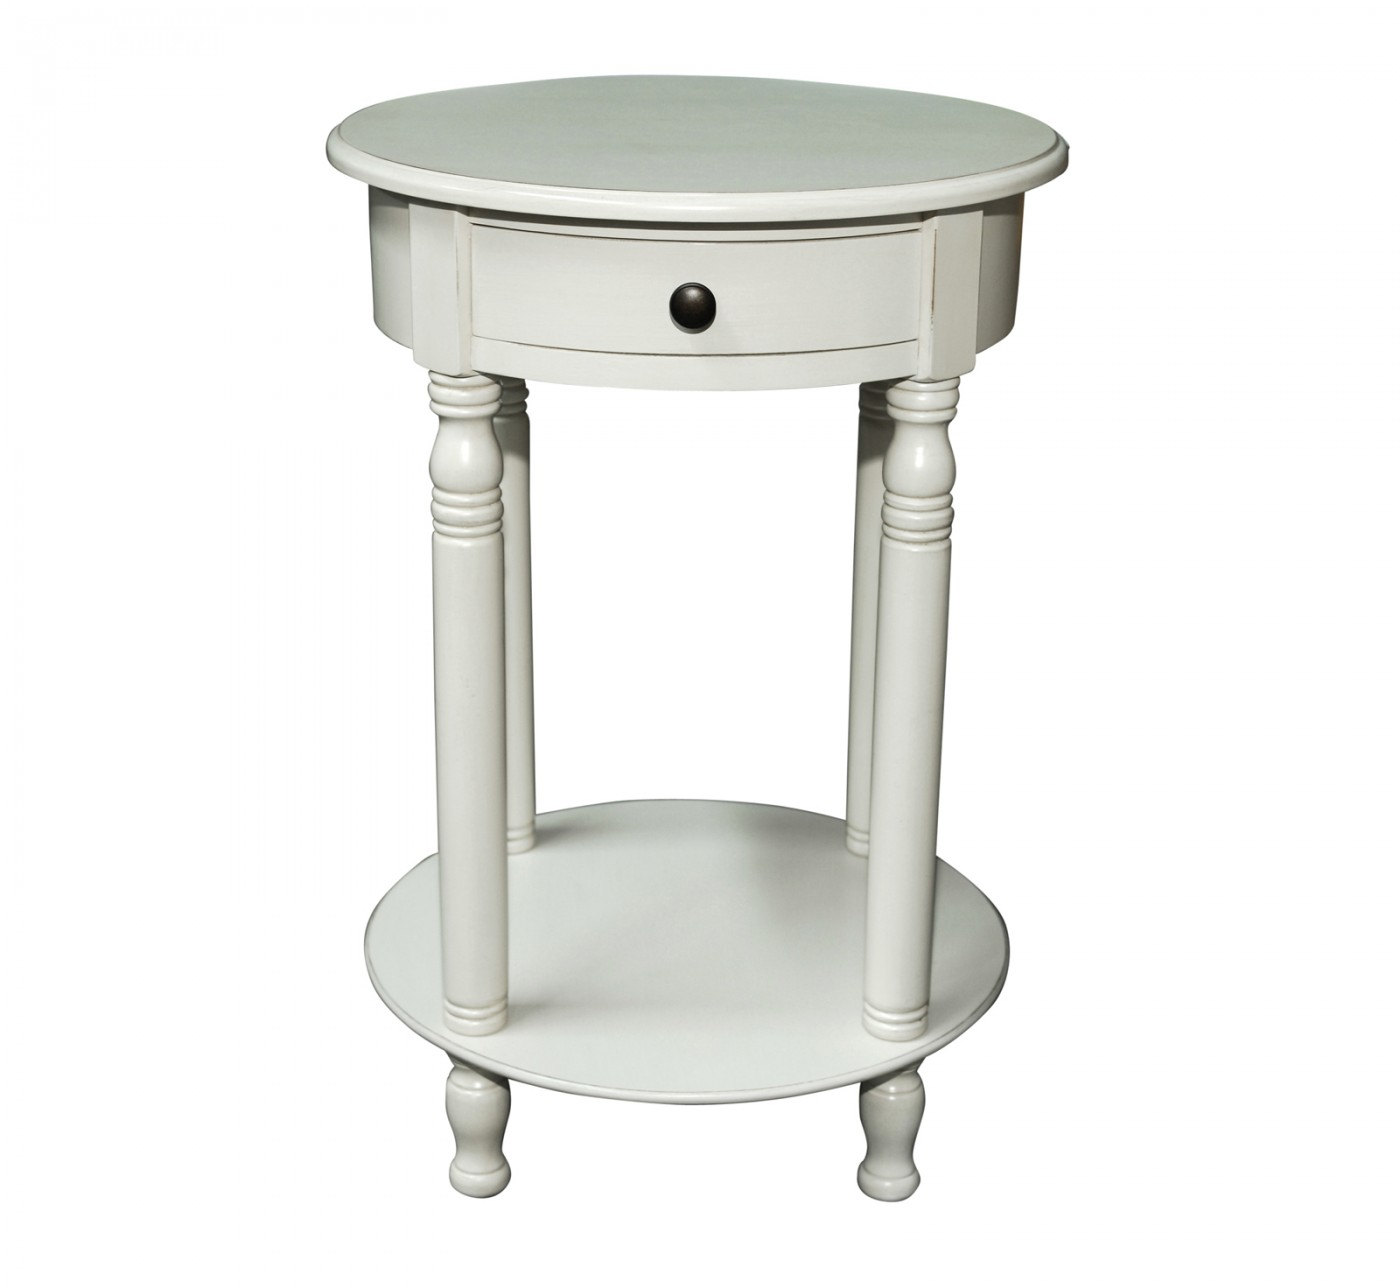 accent tables grey table white corner rustic round bedside with storage side drawer entryway wood and metal small end full size amazing cute lamps craigslist used furniture